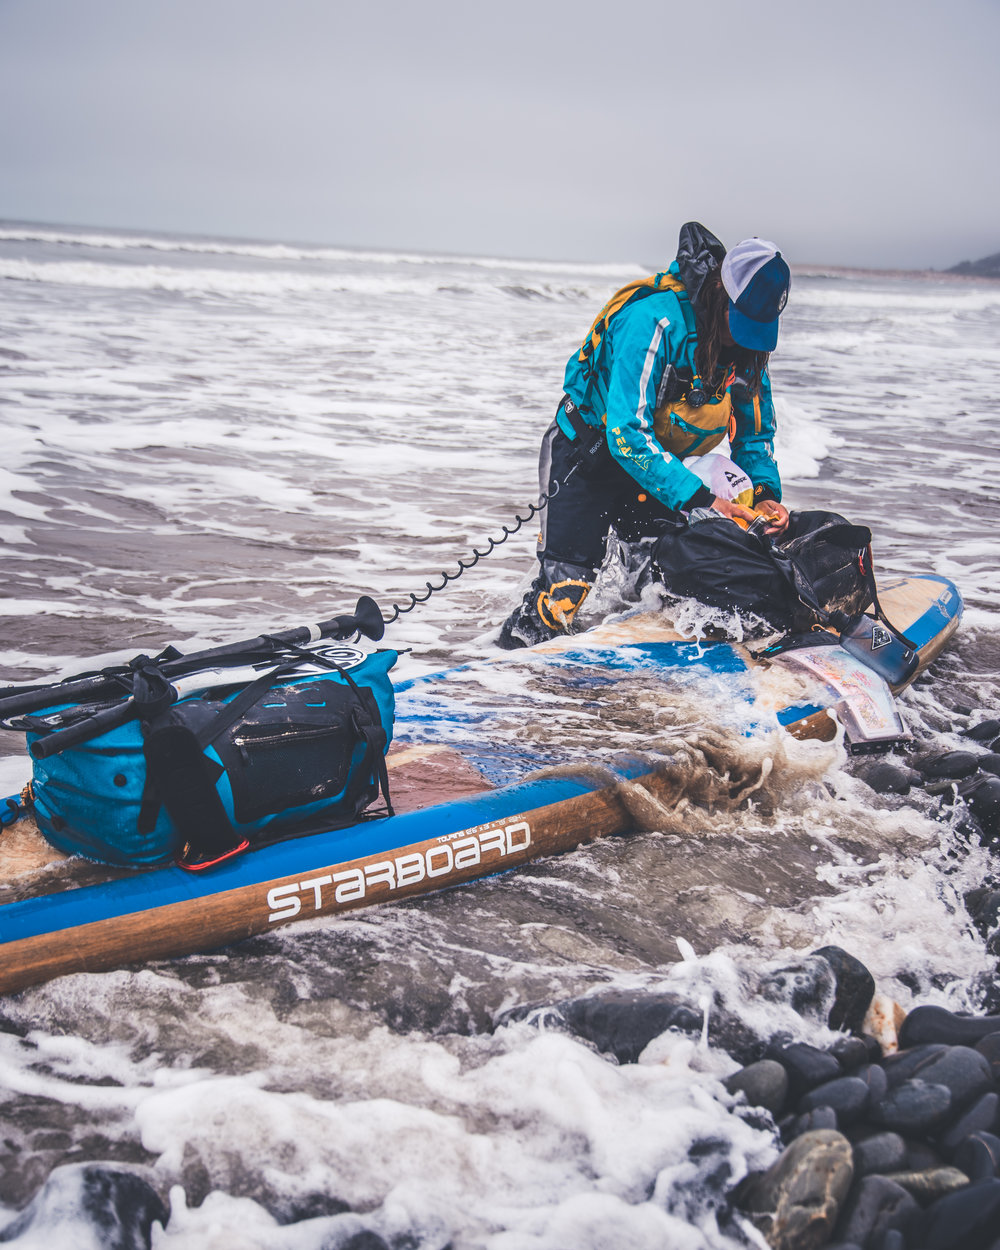 SUP AGAINST SUP WELSH COAST  - Written and photographed for Sian Sykes and Sidetracked Magazine Field Journal